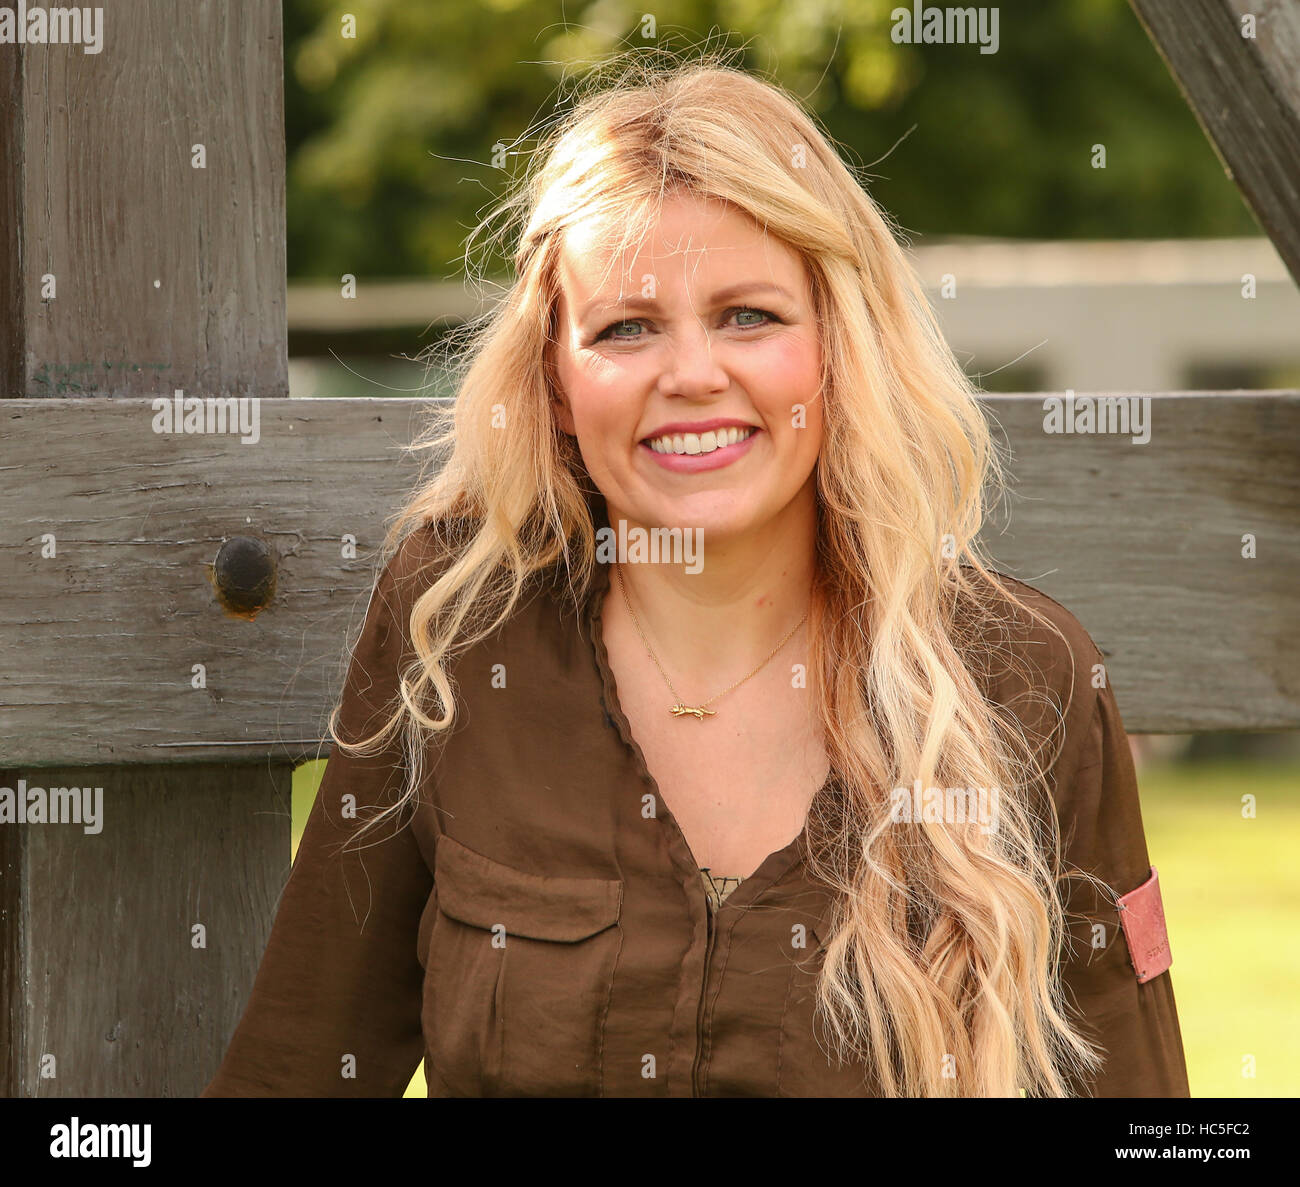 Countryfile presenters attend a photocall during Countryfile Live at Blenheim Palace  Featuring: Ellie Harrison - Stock Image